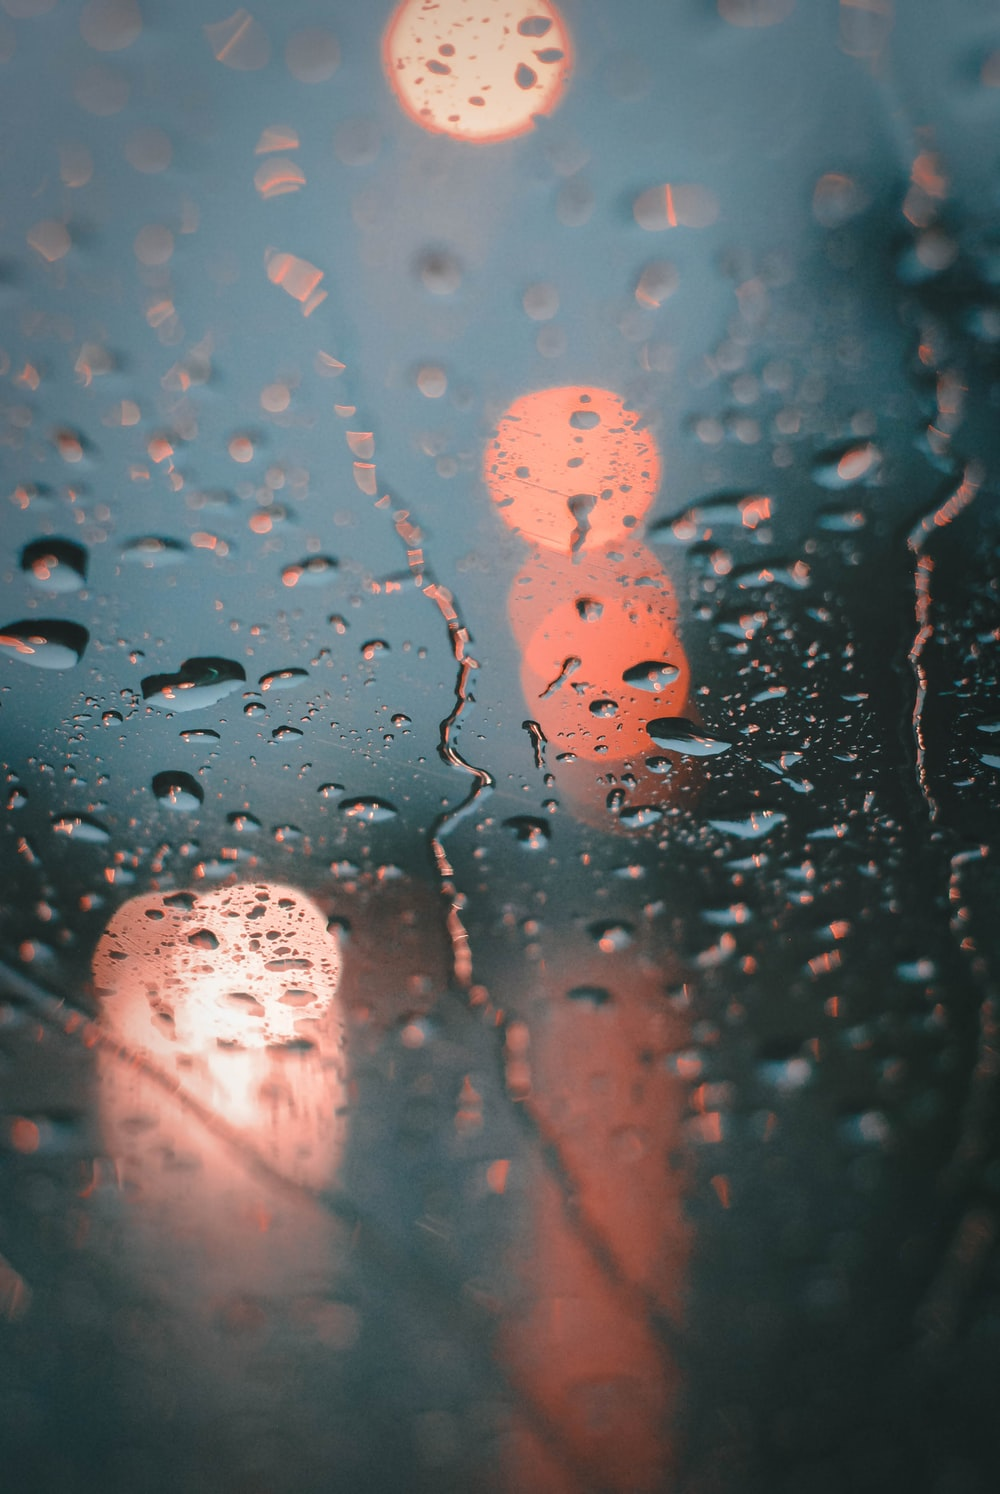 water droplets on glass